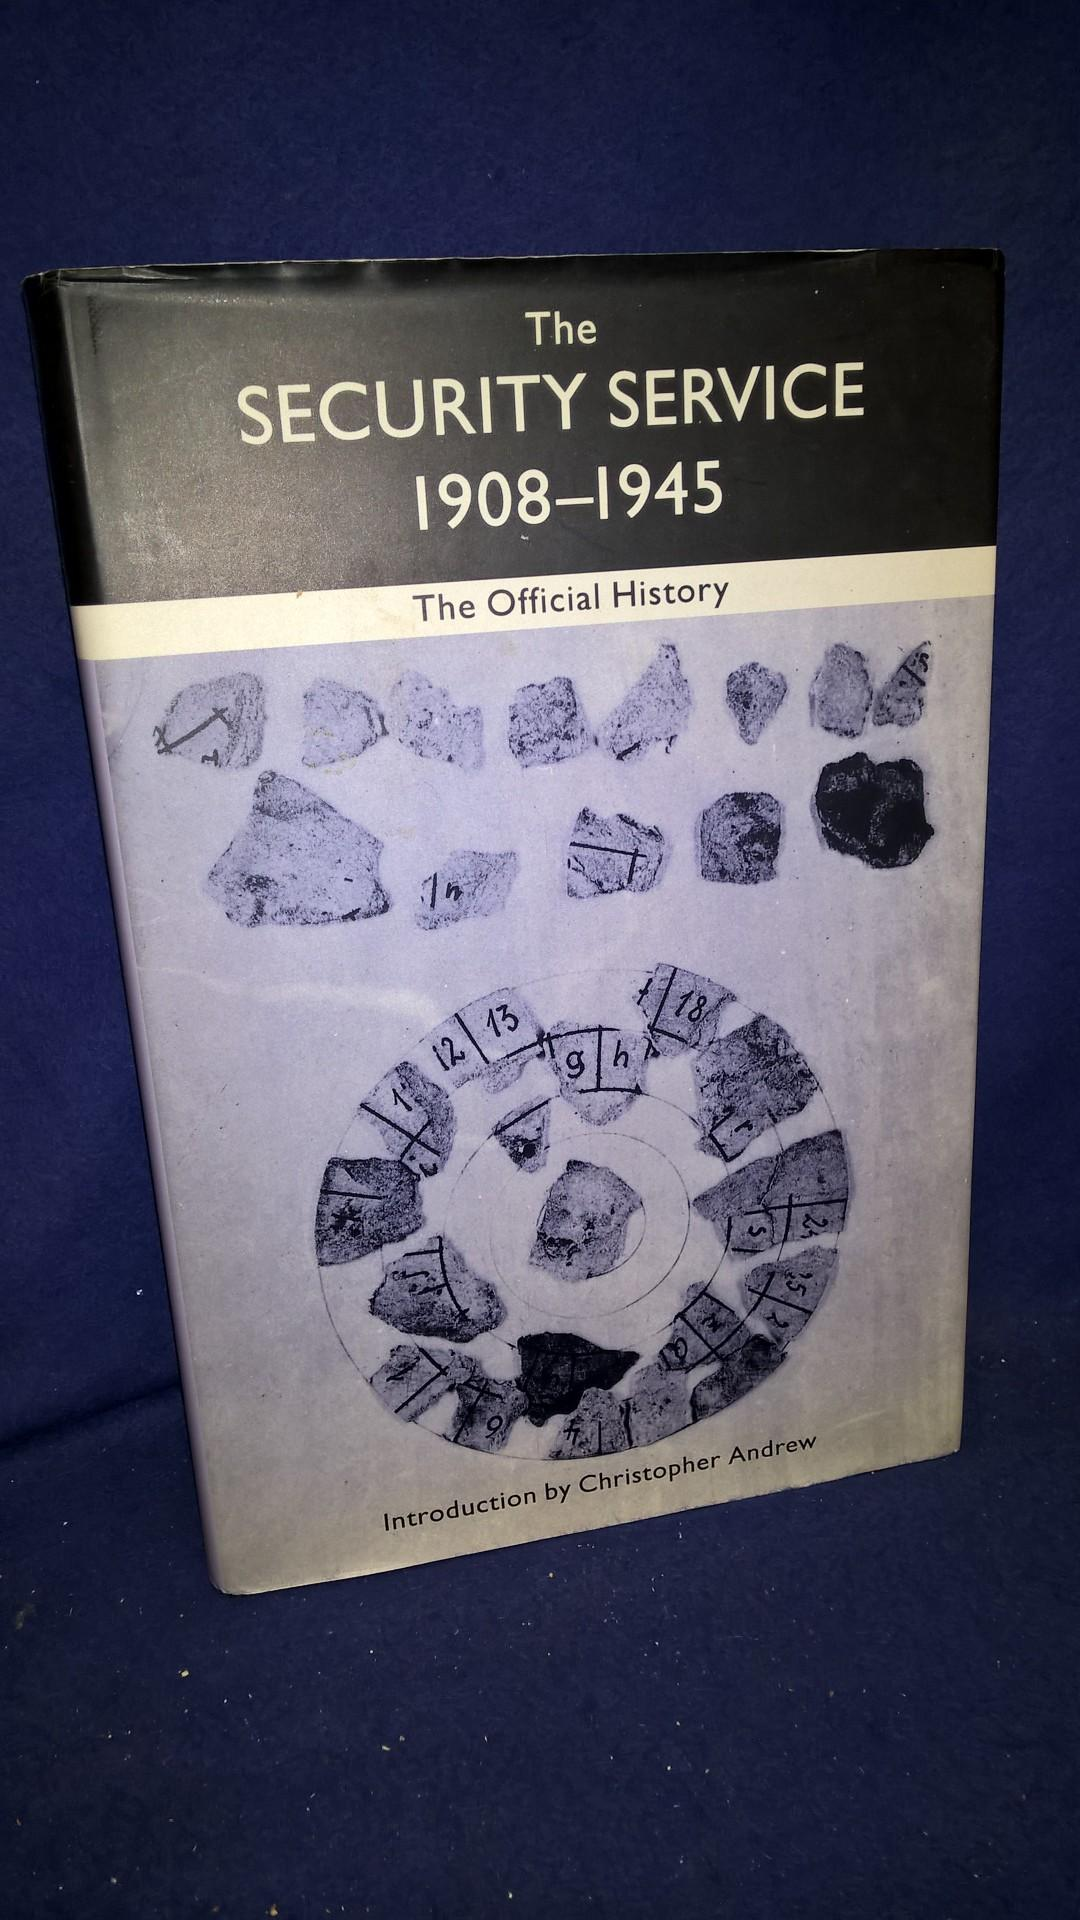 The Security Service 1908-1945. The Official History